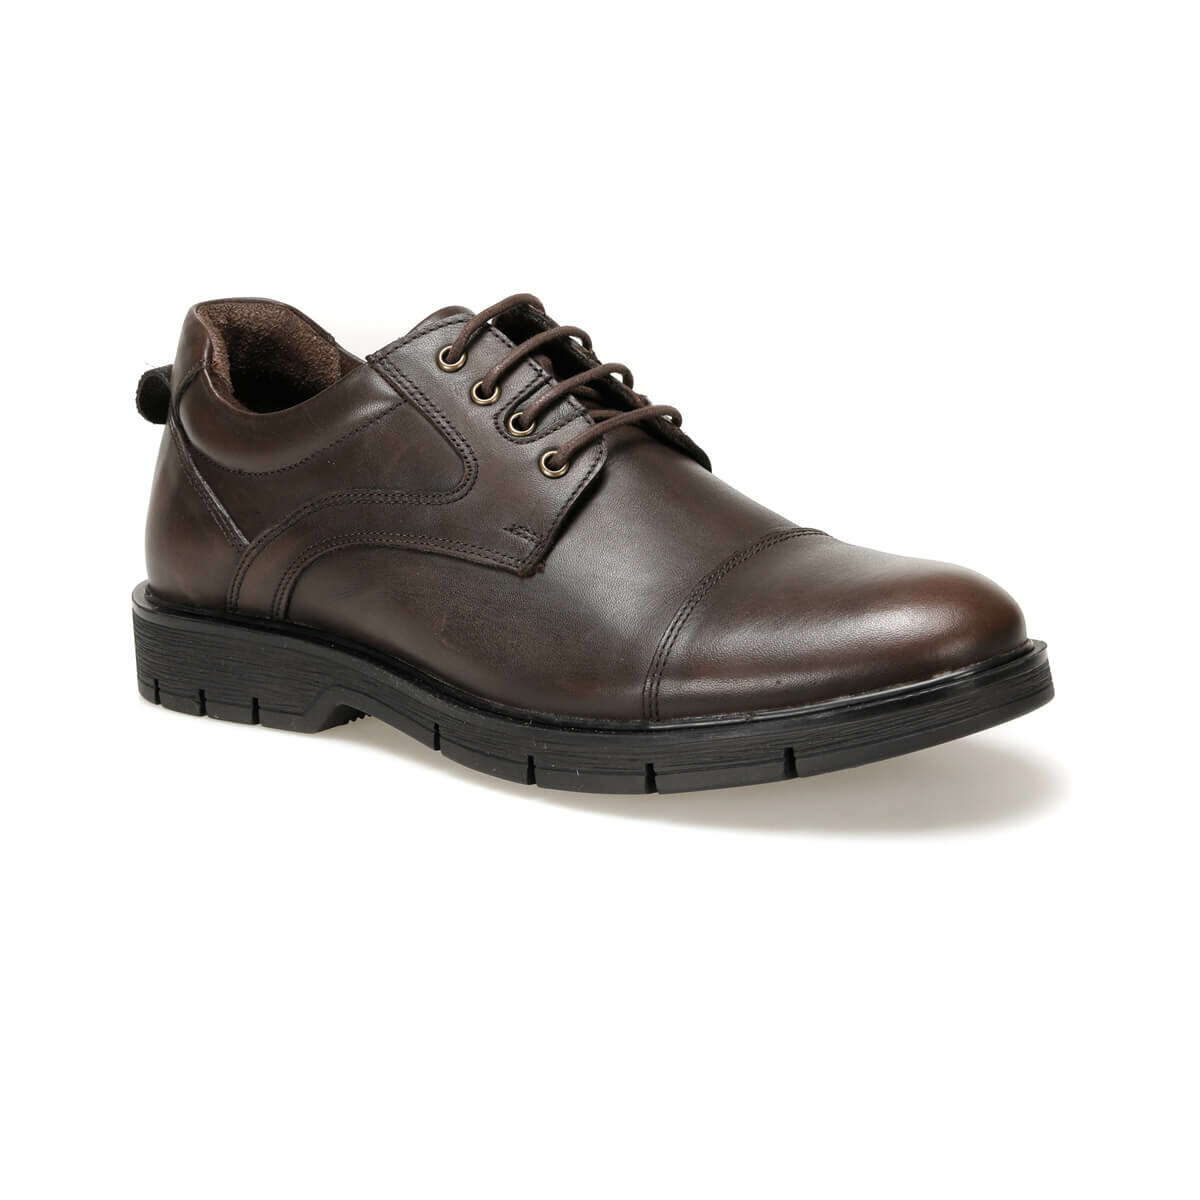 FLO 2020 Brown Men 'S Classic Shoes Garamond